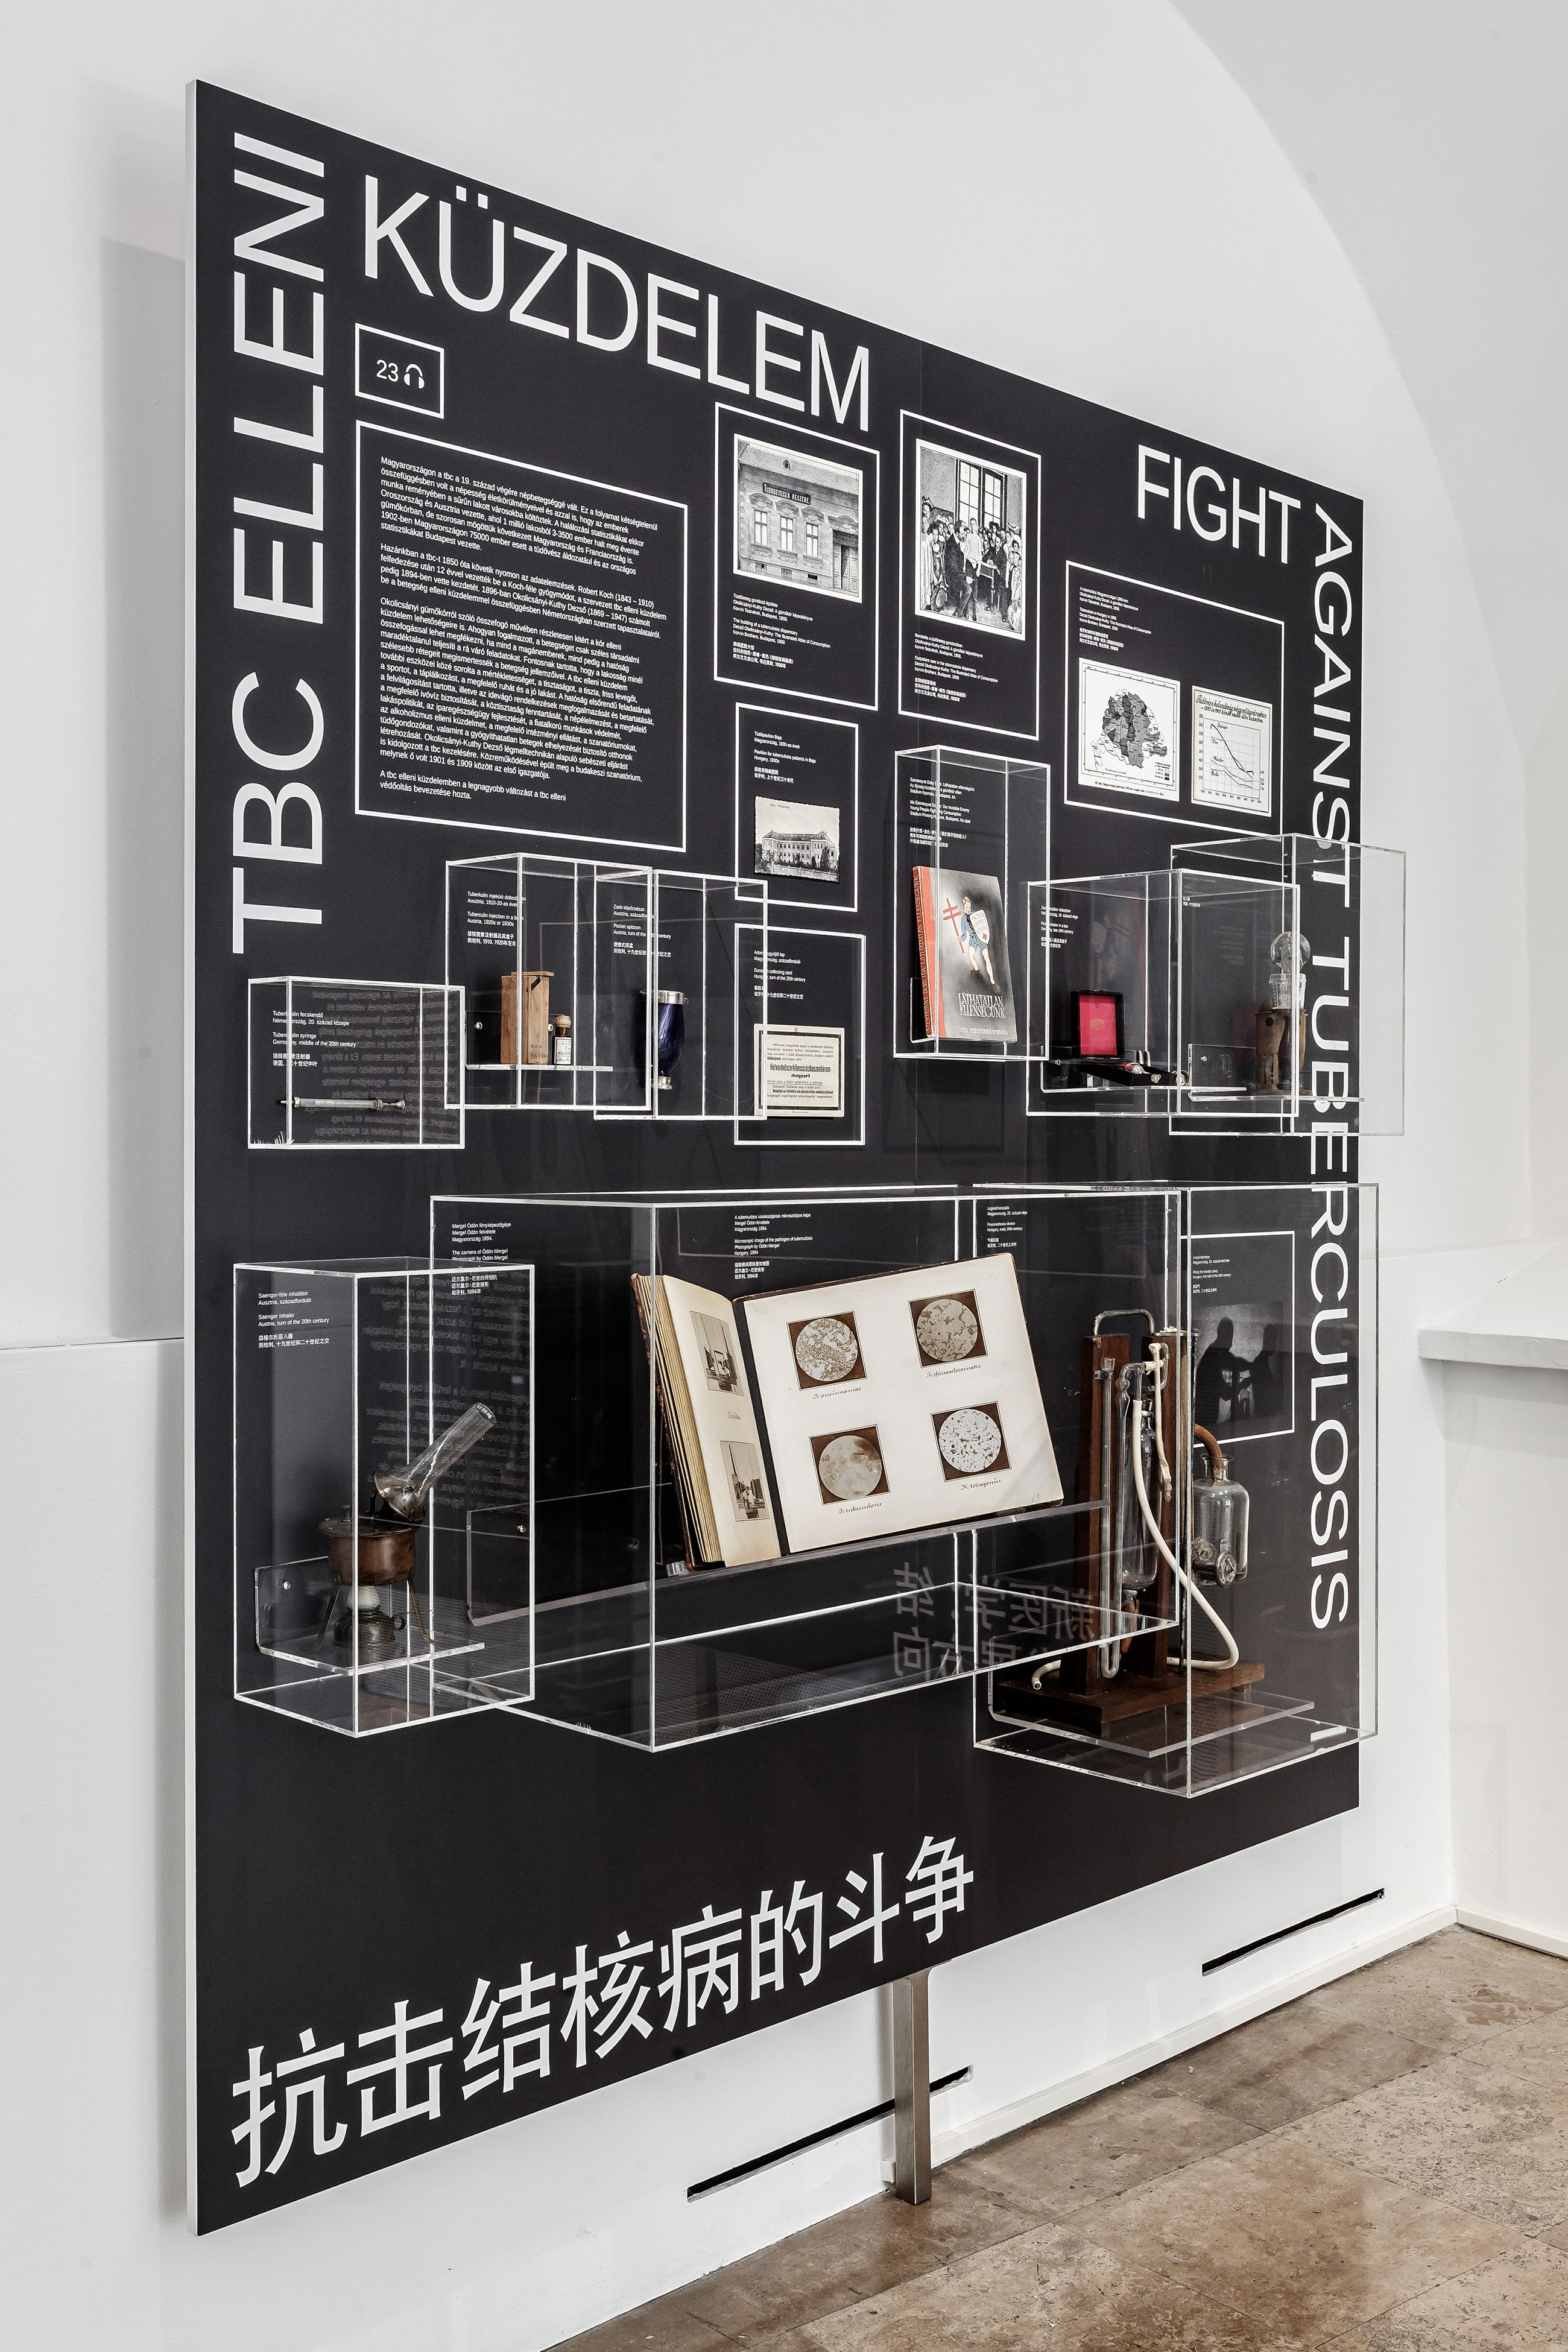 Pin By Voo Voovoo On Identity Makerspace Design Display Design Exhibition Design